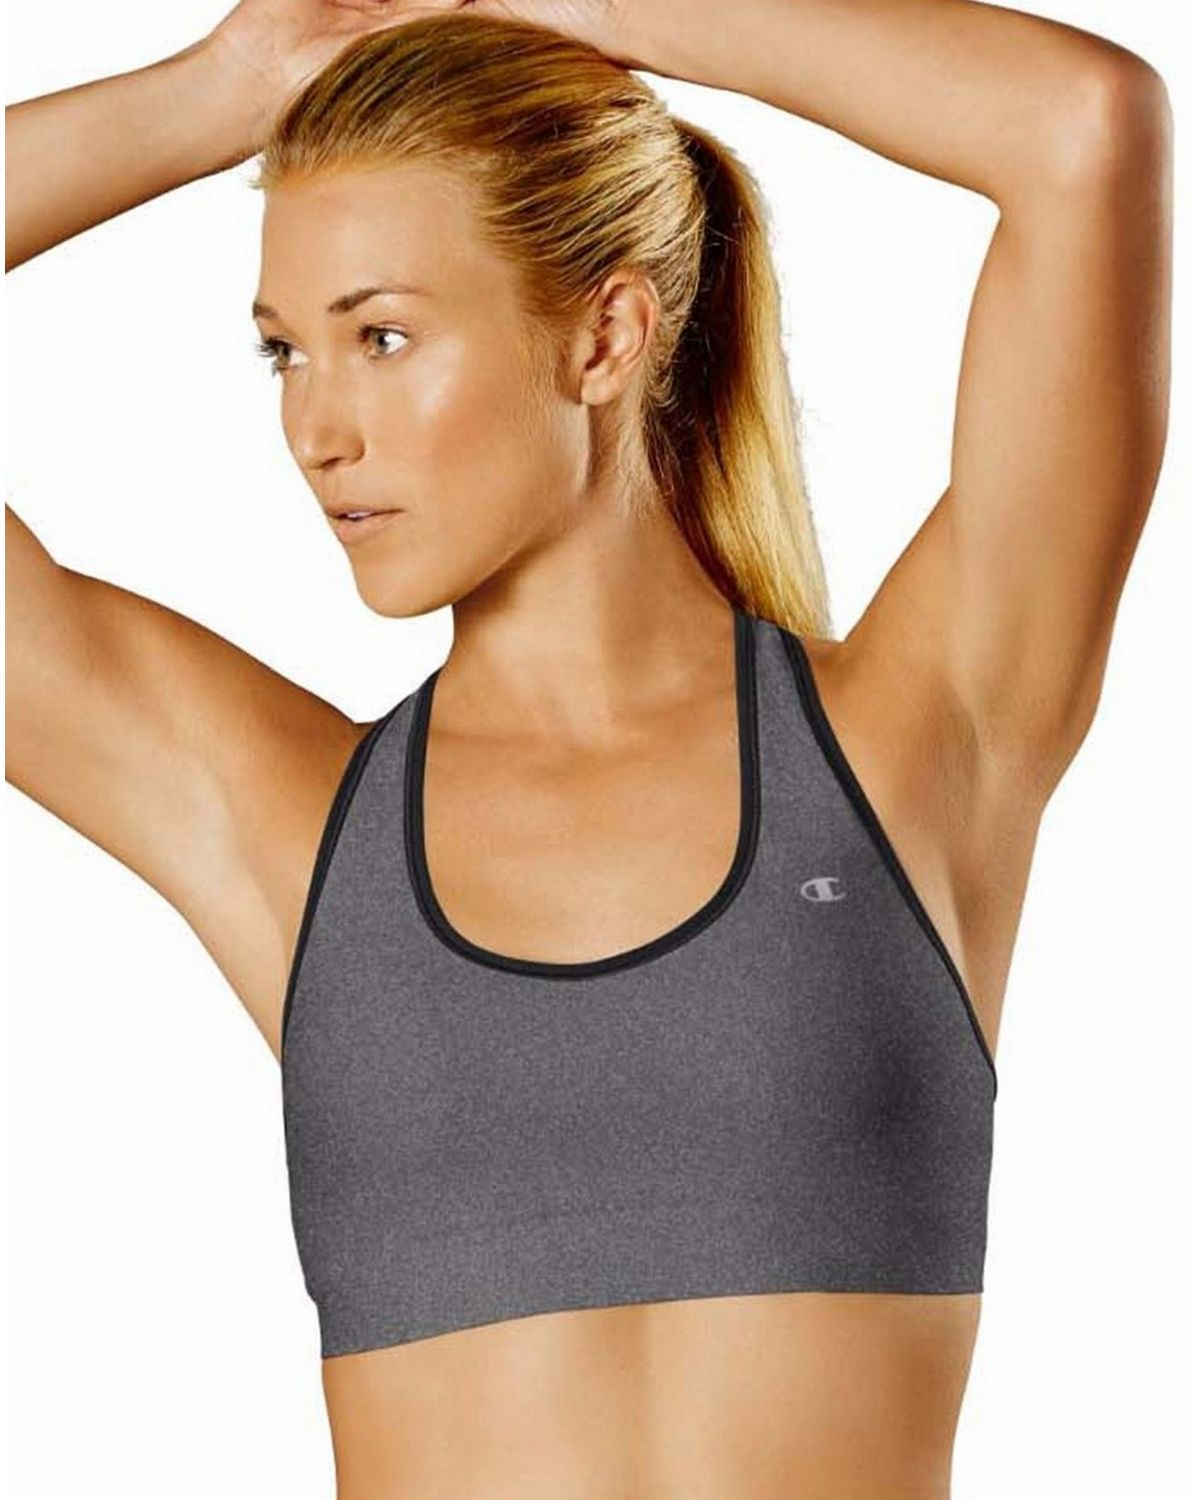 Champion B9504 Absolute Racerback Sports Bra - Granite Heather/Black - L B9504